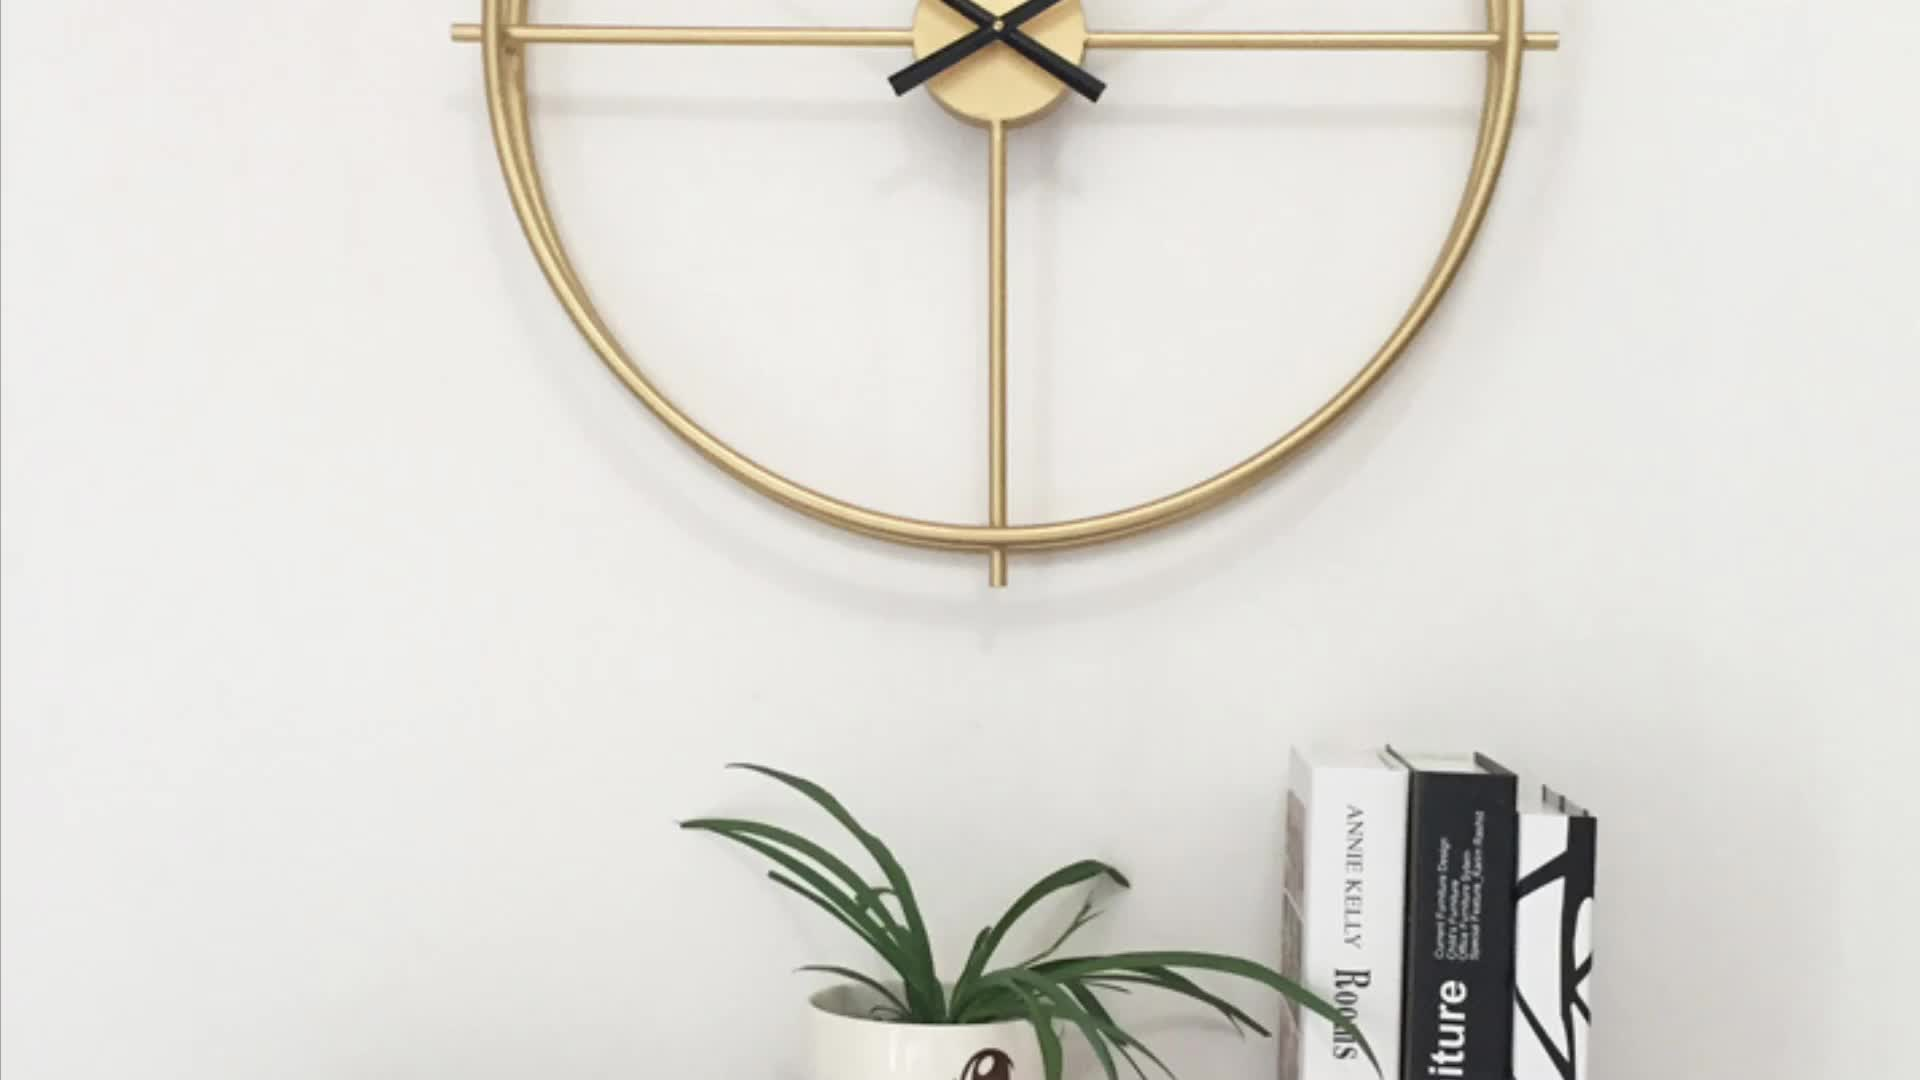 Oversized American Vintage Retro Rustic Handicraft Modern Home Decor Metal Wall Clock With Large Hands Sweep Mechanism Buy Farmhouse Home Decor Wall